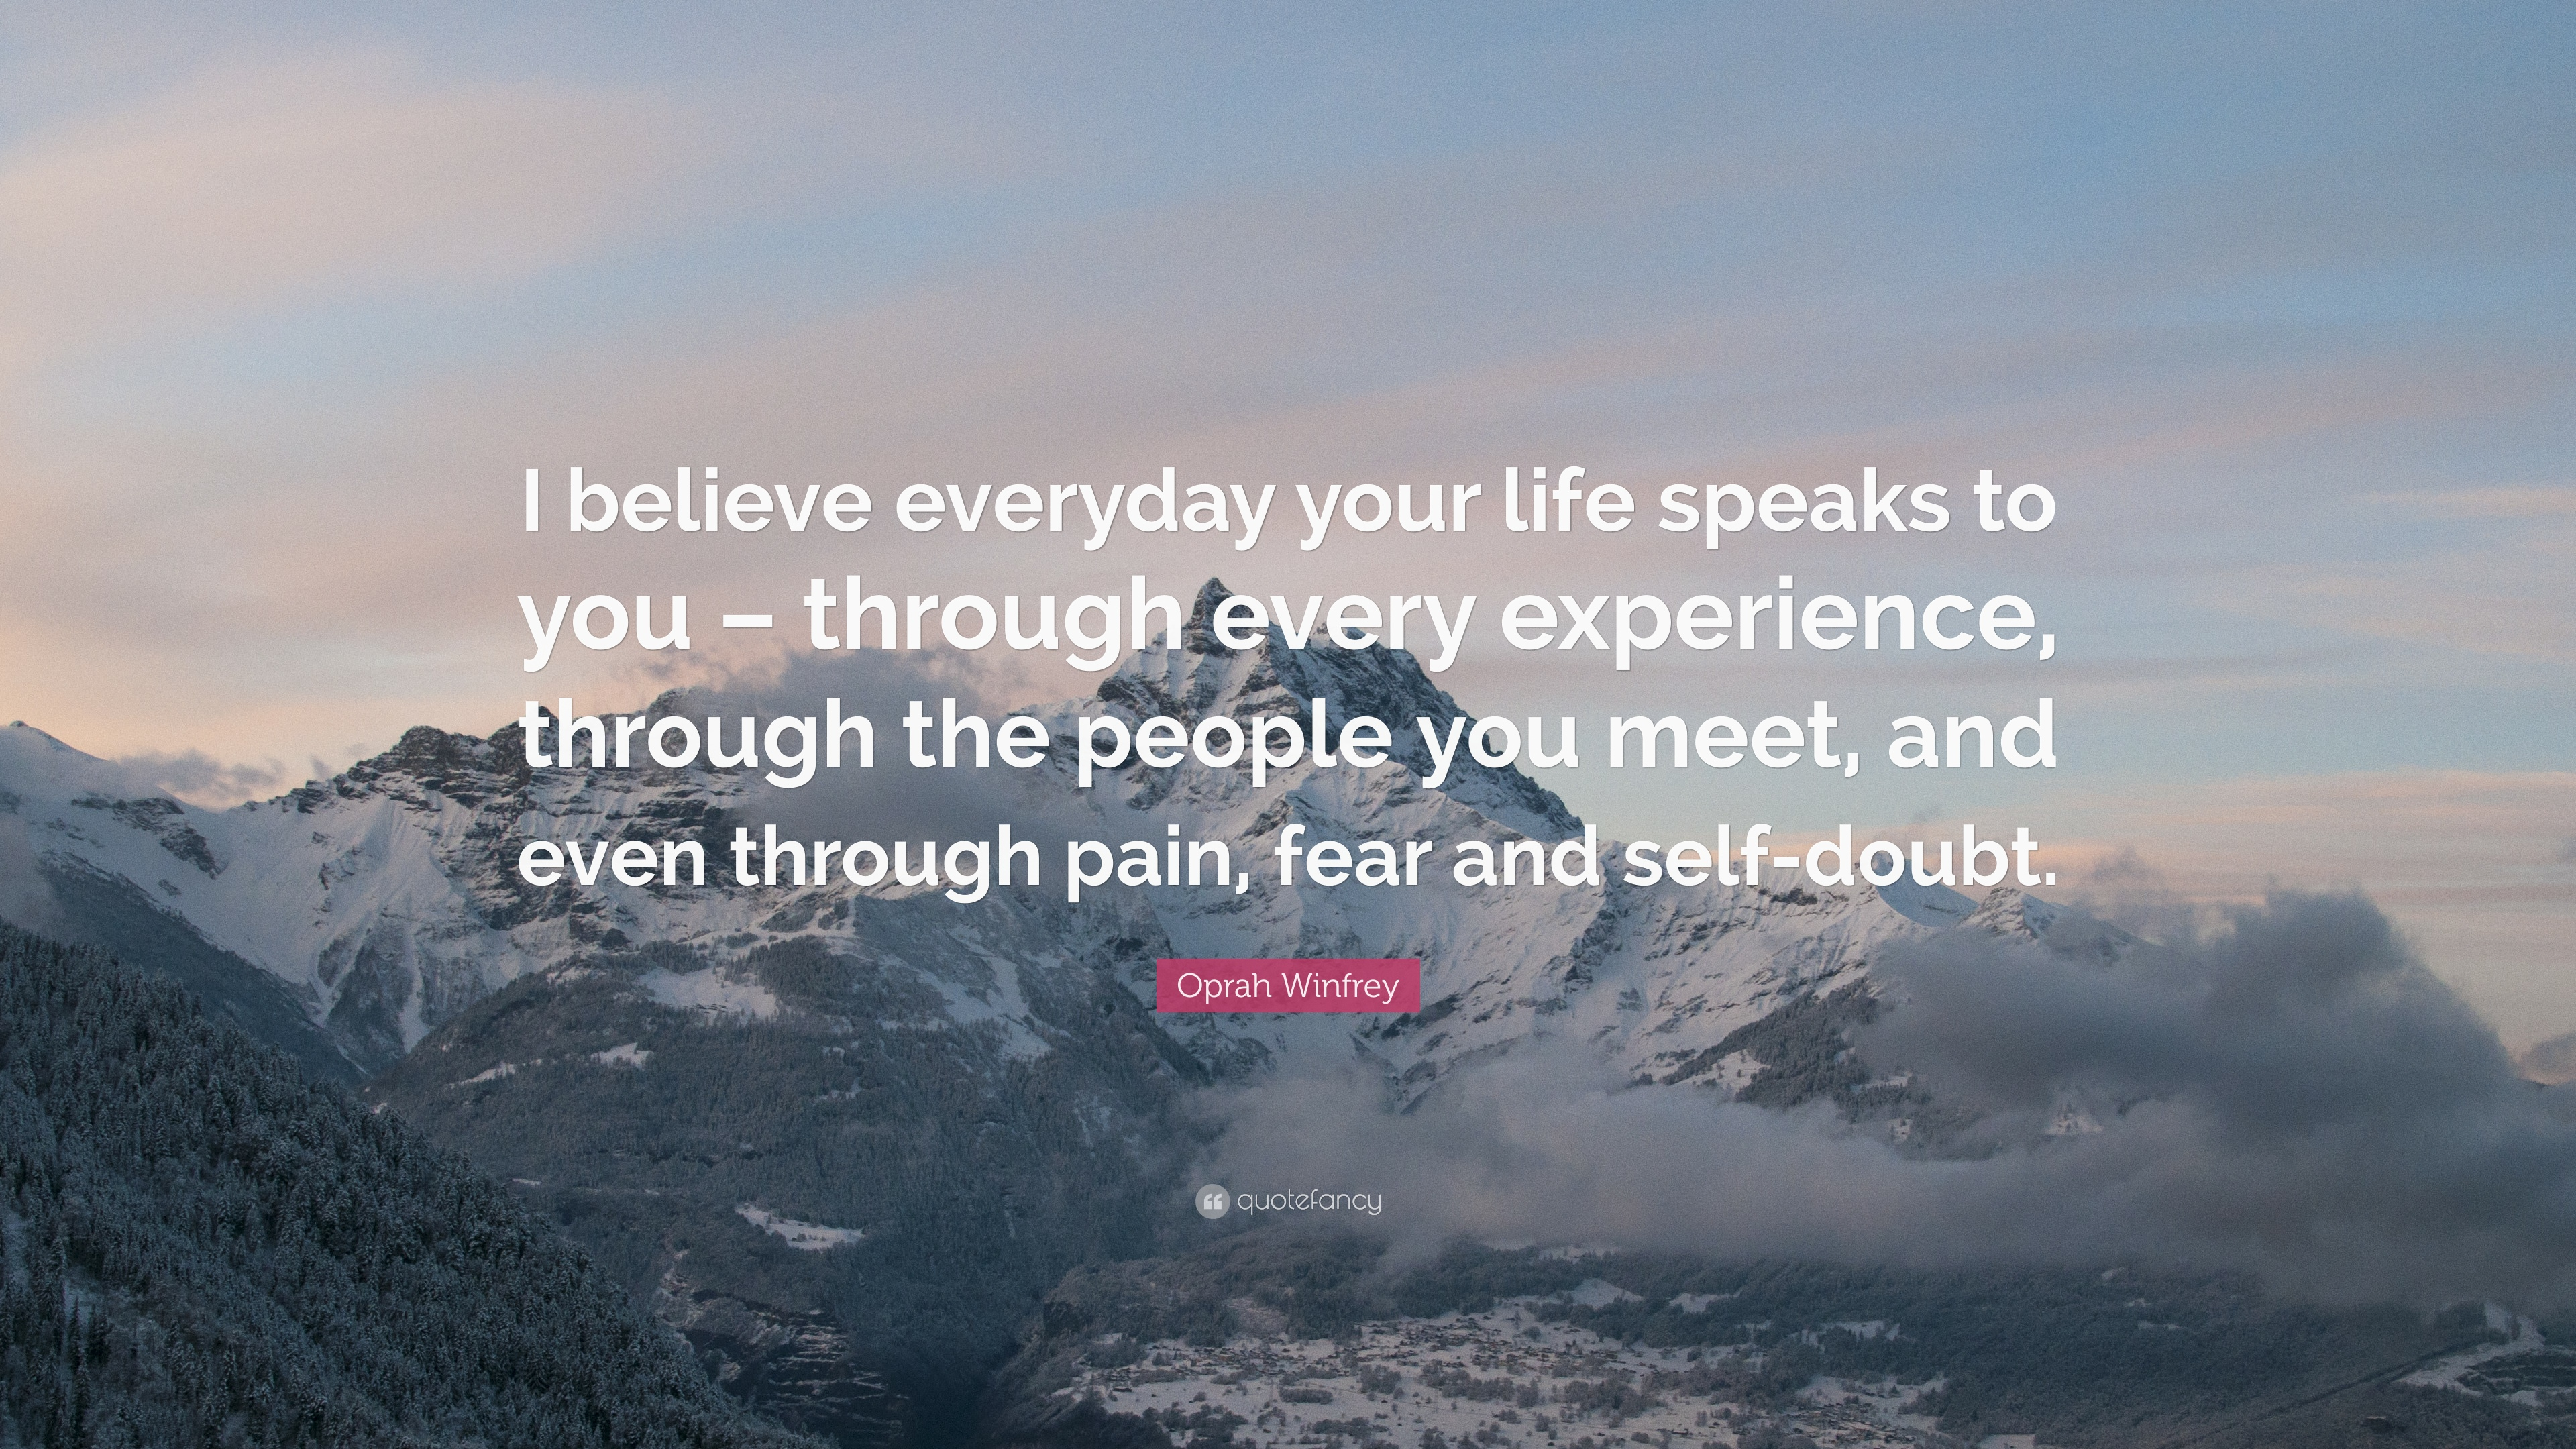 """oprah winfrey quote """"i believe everyday your life speaks to you"""